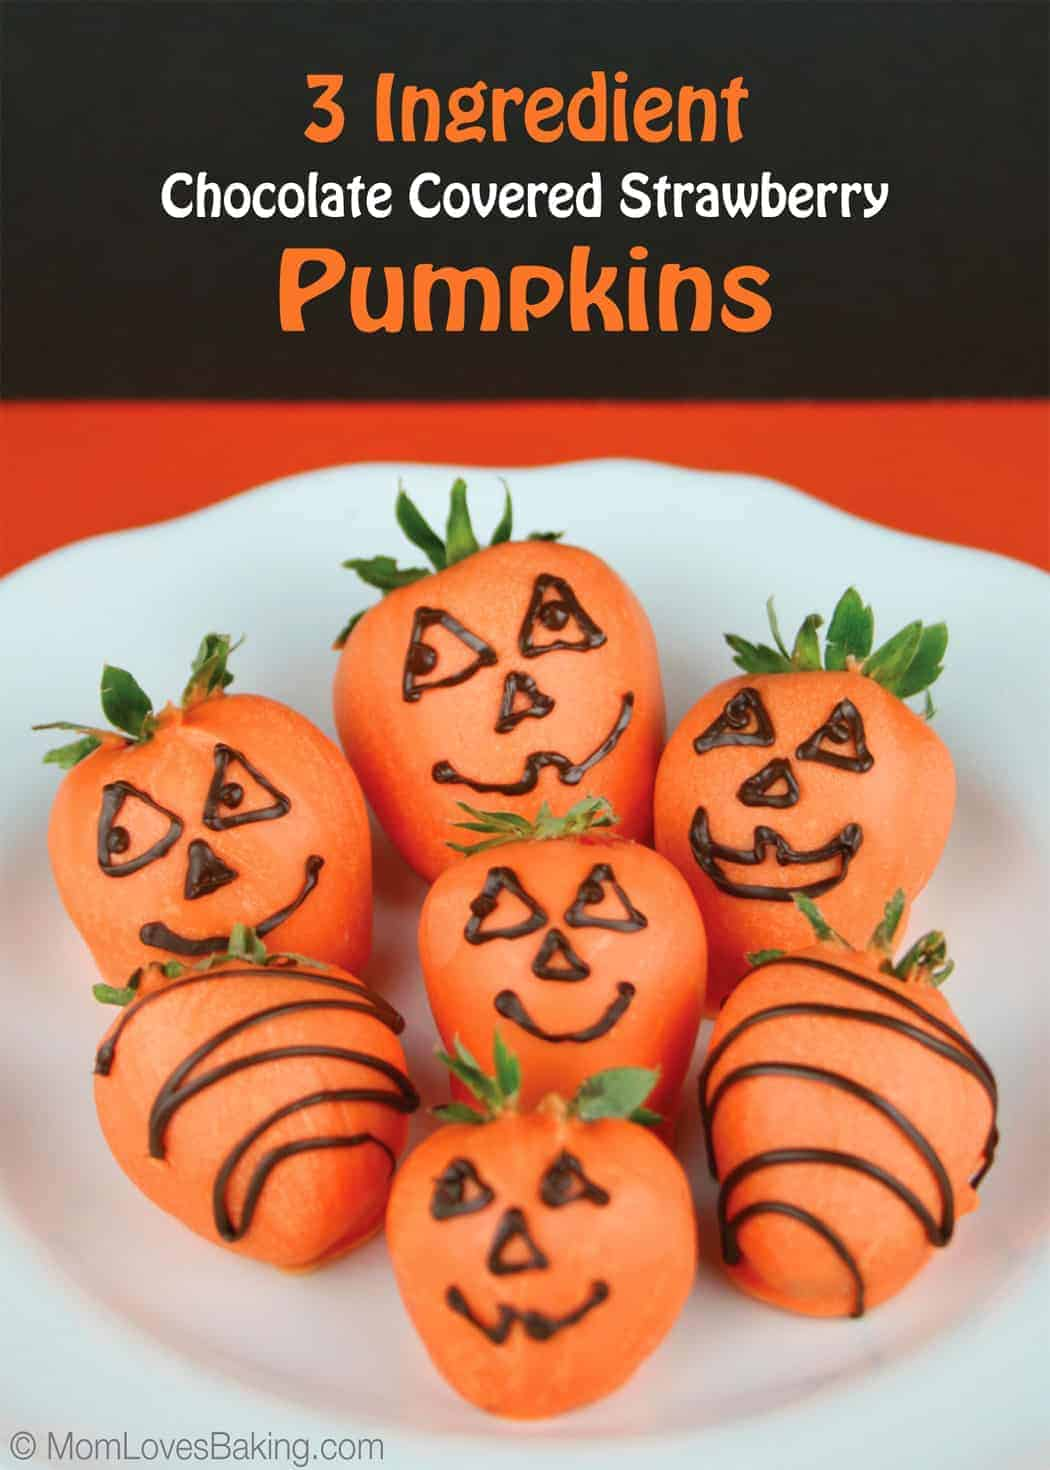 3 Ingredient Chocolate Covered Strawberry Pumpkins - Mom Loves Baking